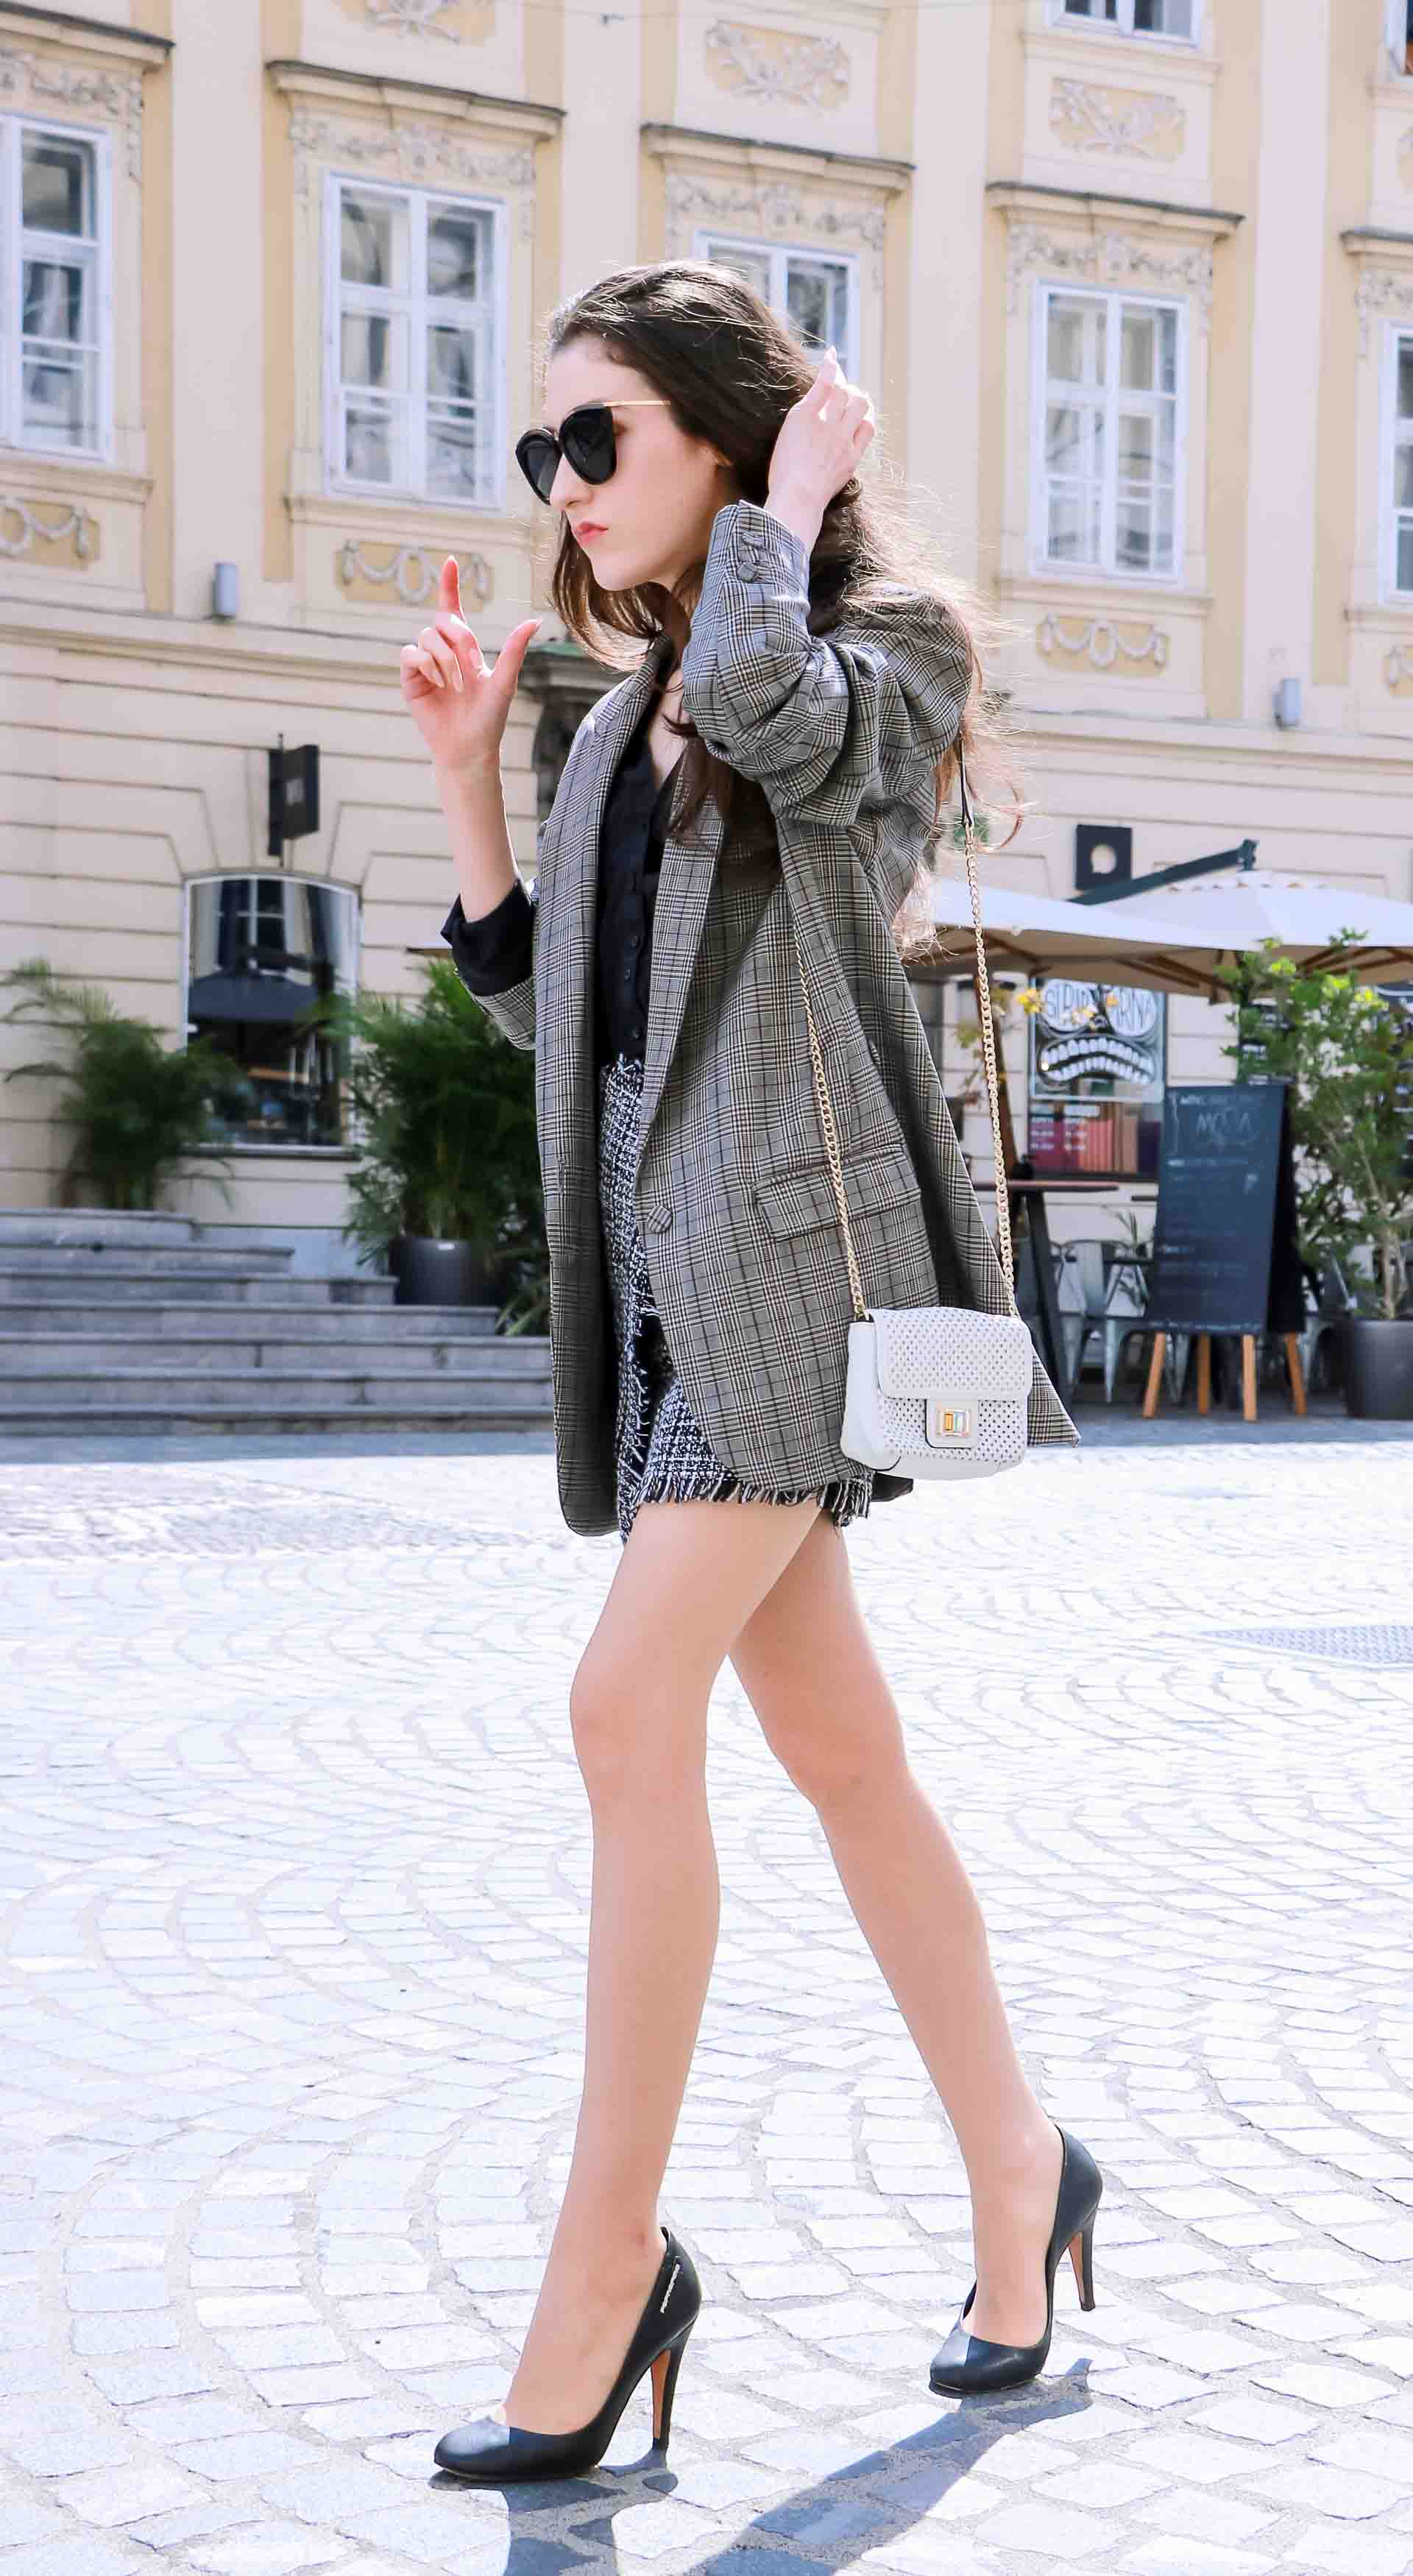 Fashion Blogger Veronika Lipar of Brunette from Wall Street dressed in Erika Cavallini oversized boyfriend plaid blazer with short tweed black and white mini skirt from streets, black pumps and white chain strap shoulder bag while dancing on the street in Ljubljana